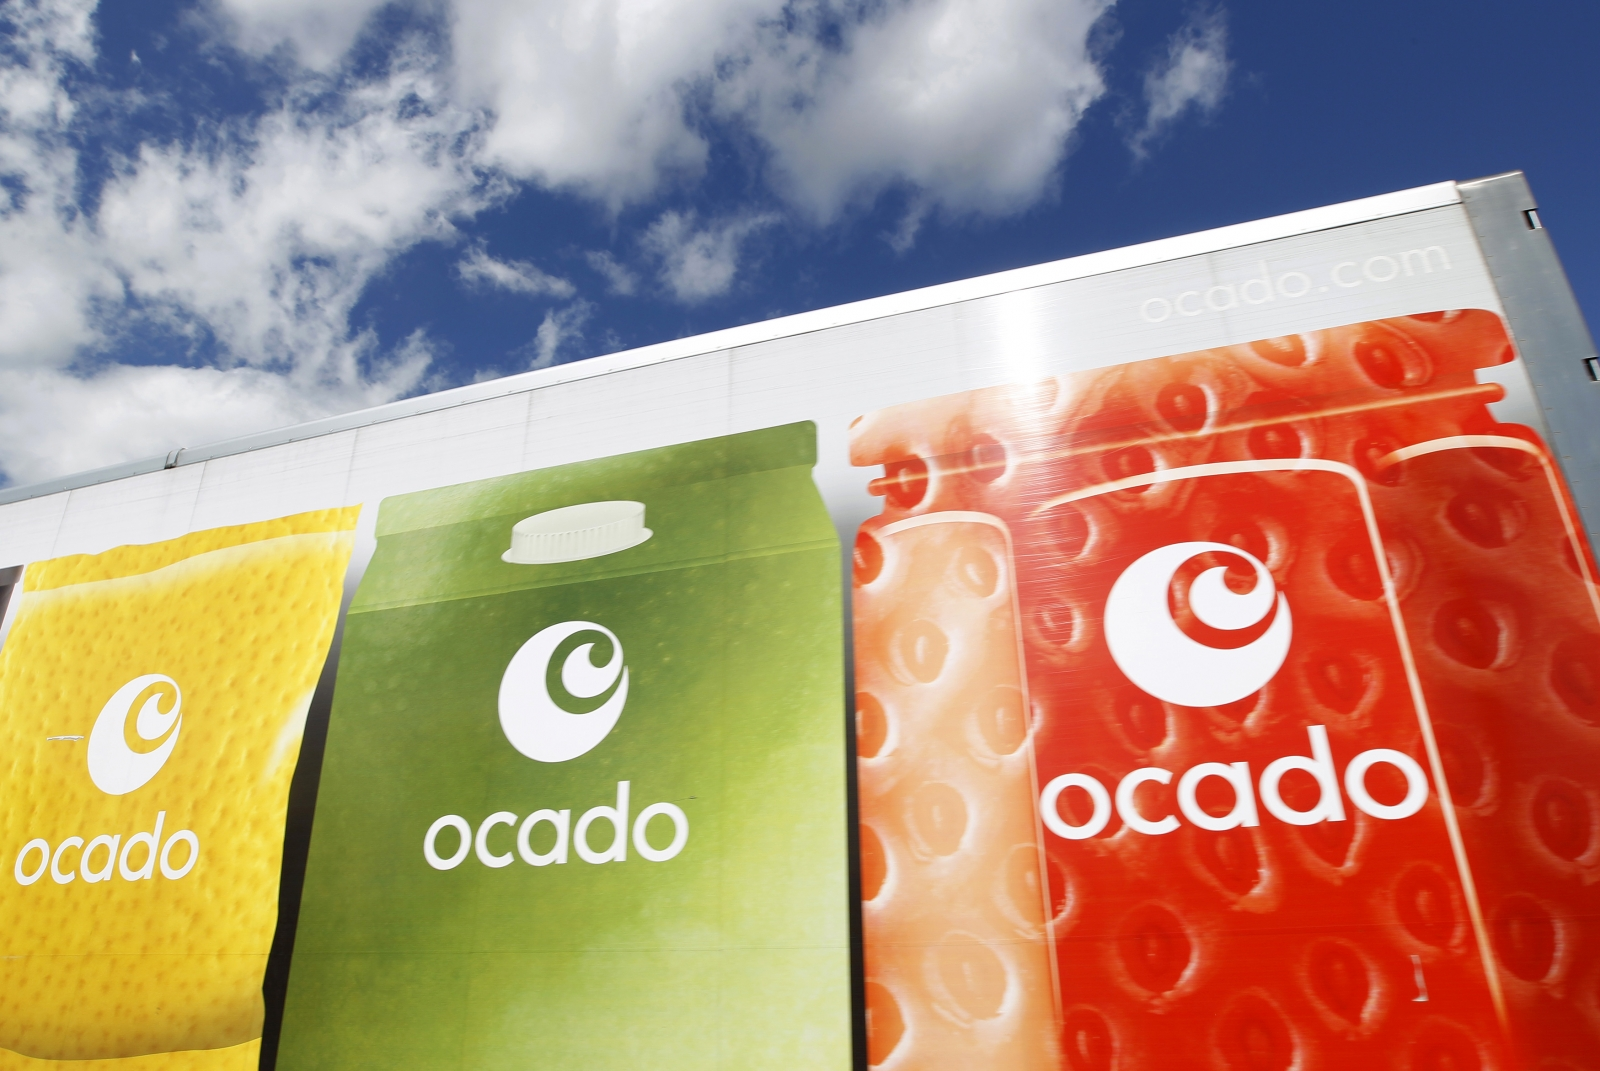 Ocado tests driveless delivery van